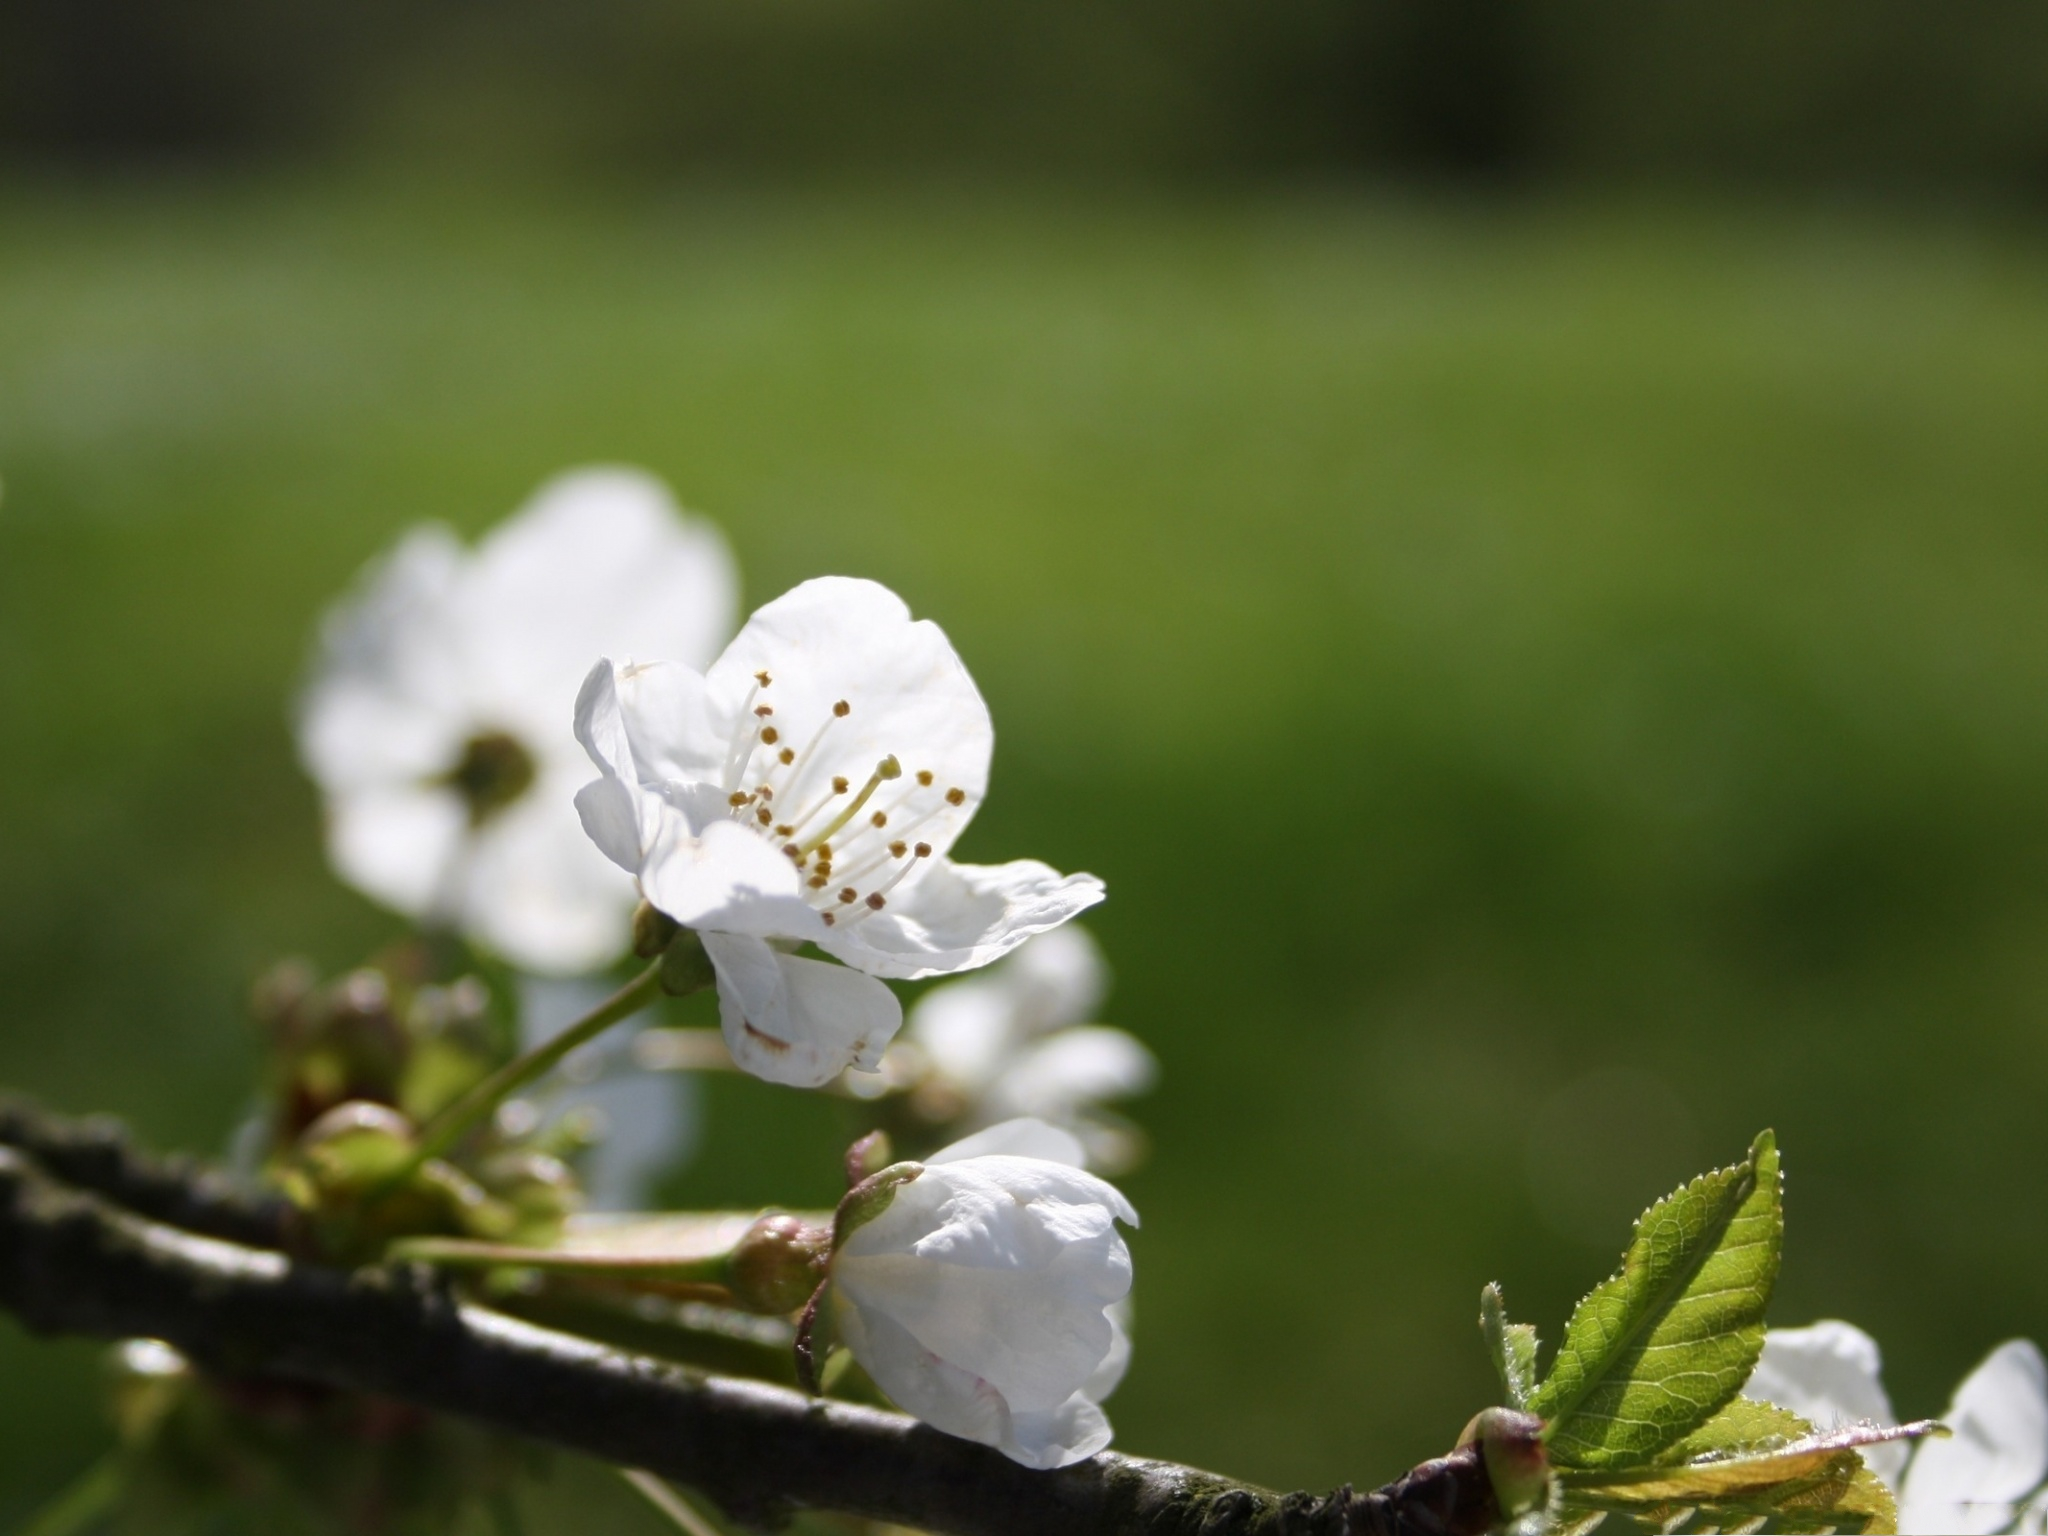 click to free download the wallpaper--White Cherry Flowers, Little Flowers in Bloom, Smile in the Sunlight 2048X1536 free wallpaper download